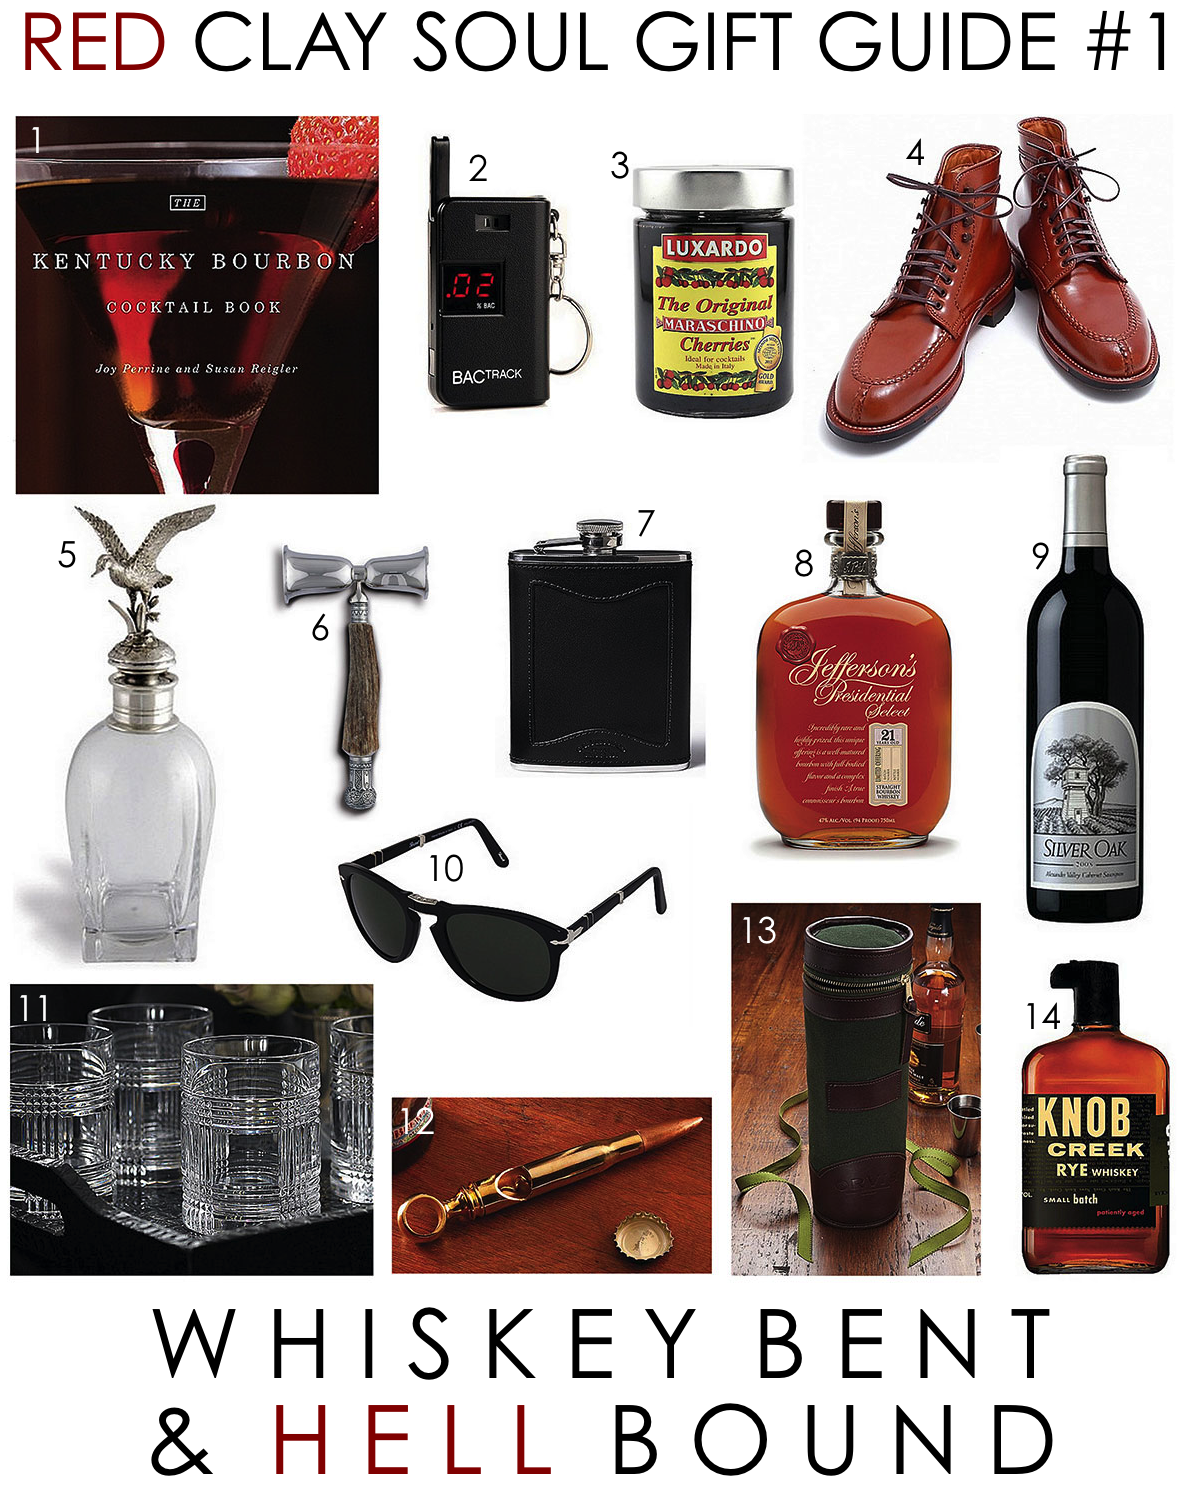 Red Clay Soul Gift Guide #1: Whiskey Bent & Hell Bound